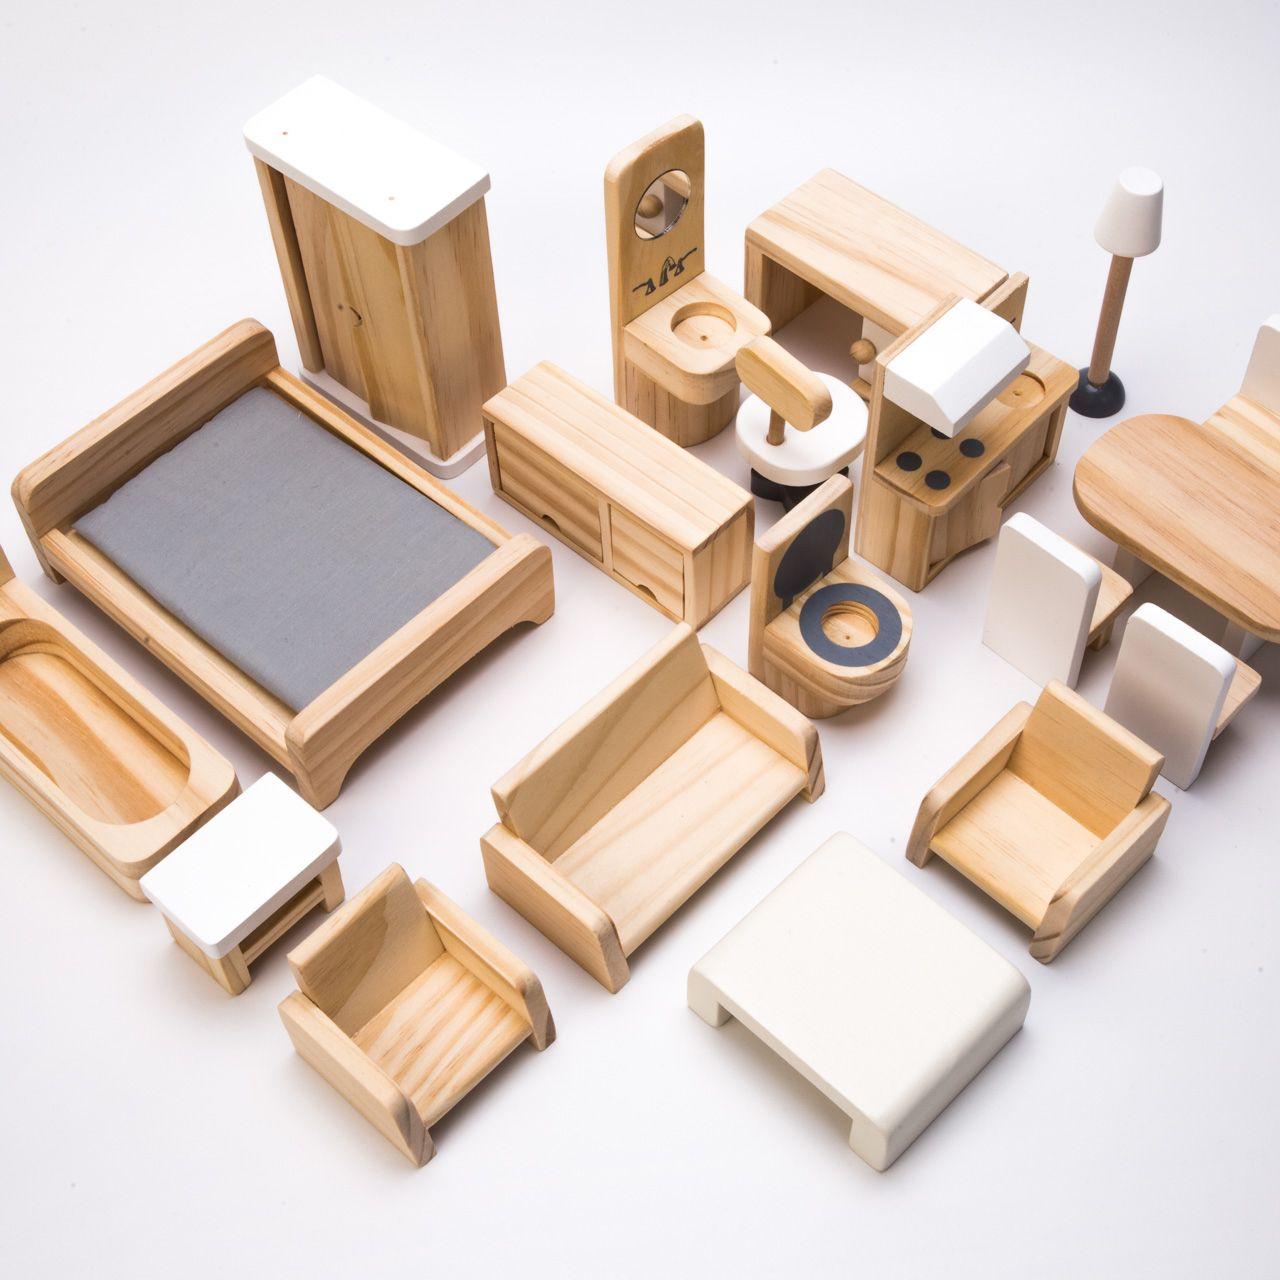 Source Mini Wooden Doll House Furniture On M Alibaba Com Wooden